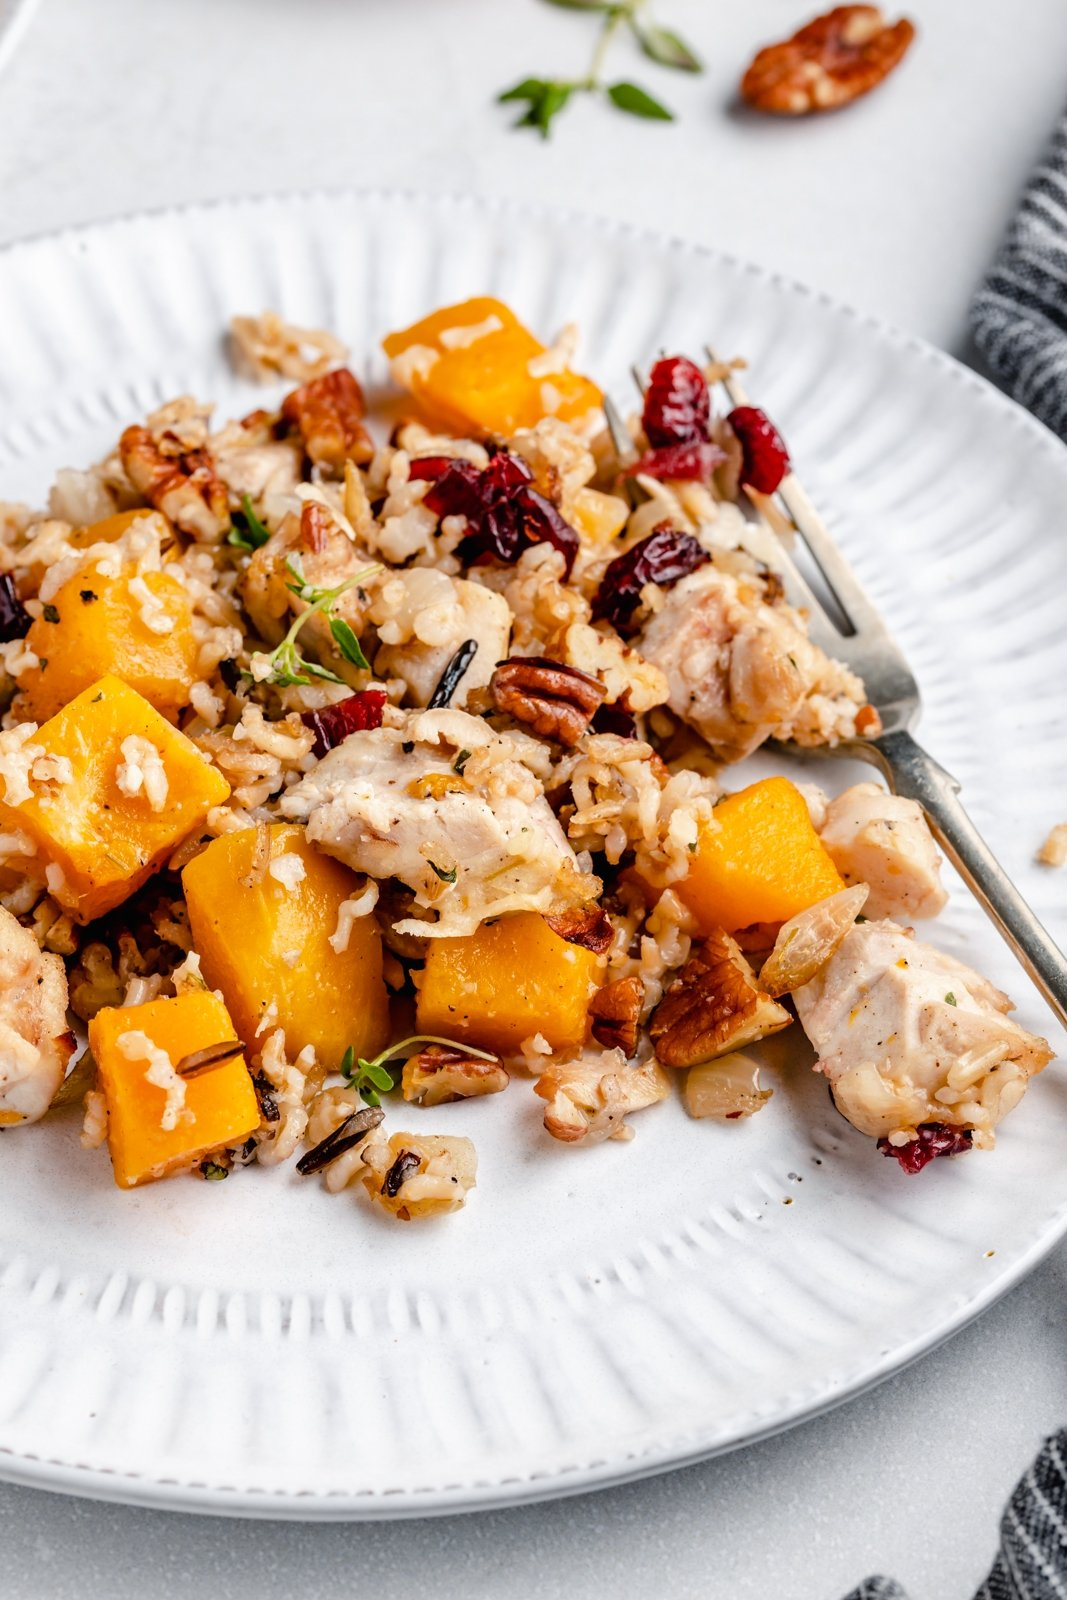 wild rice casserole with butternut squash and chicken on a plate